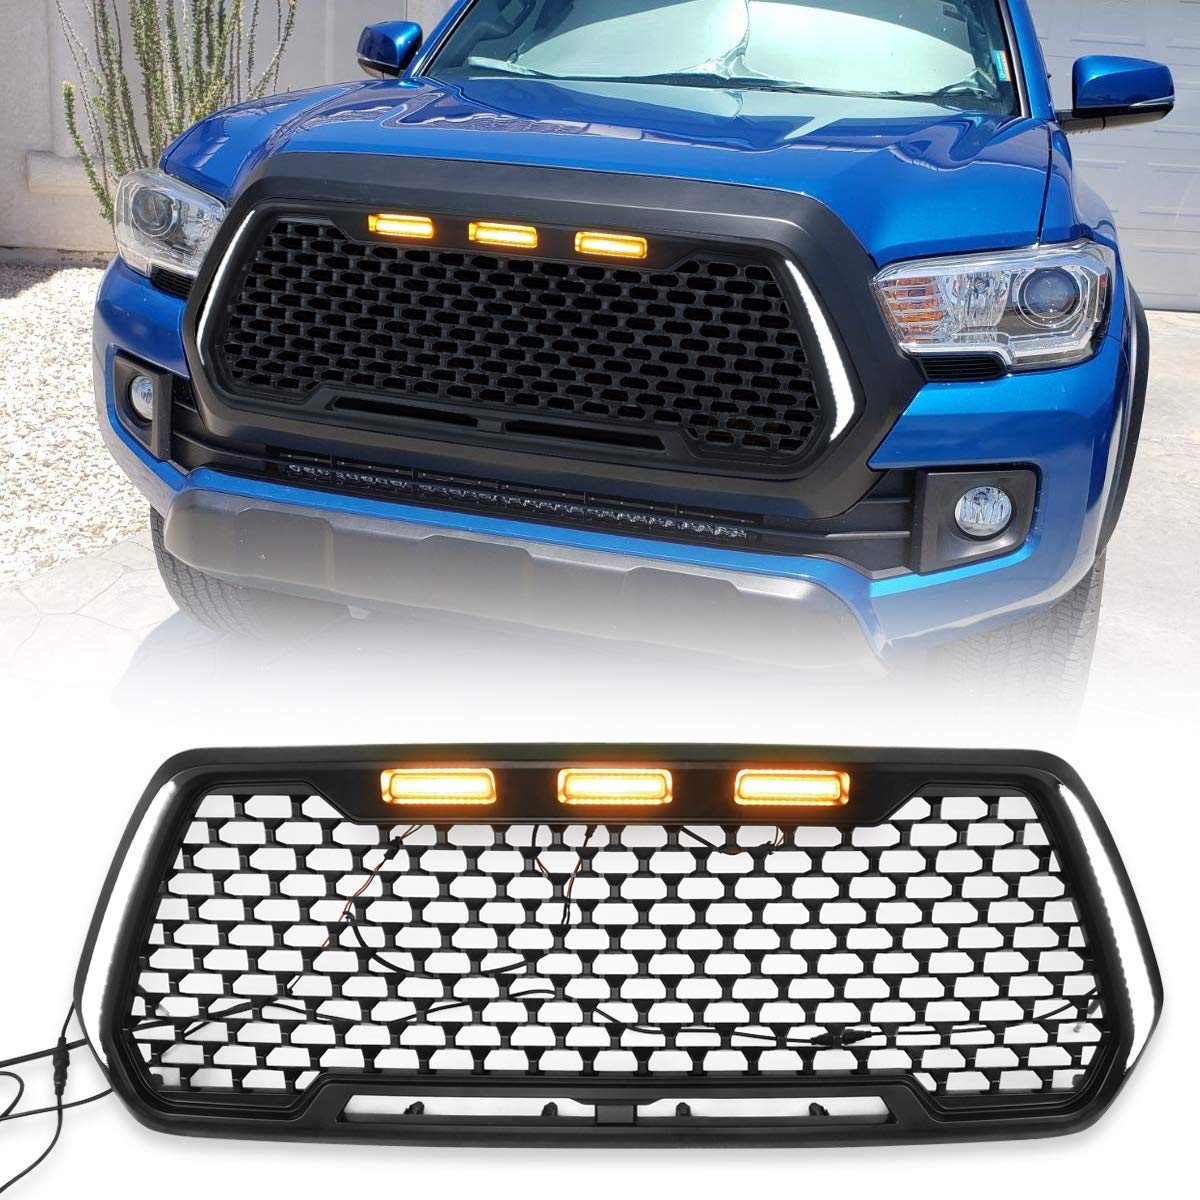 Modifying Honeycomb Matte Black Mesh Replacement Grill for 2016-2019 Toyota Tacoma Front Grille with 3 Amber LED Lights Outstanding Appearance 2 Side DRL Turn Signal Lights